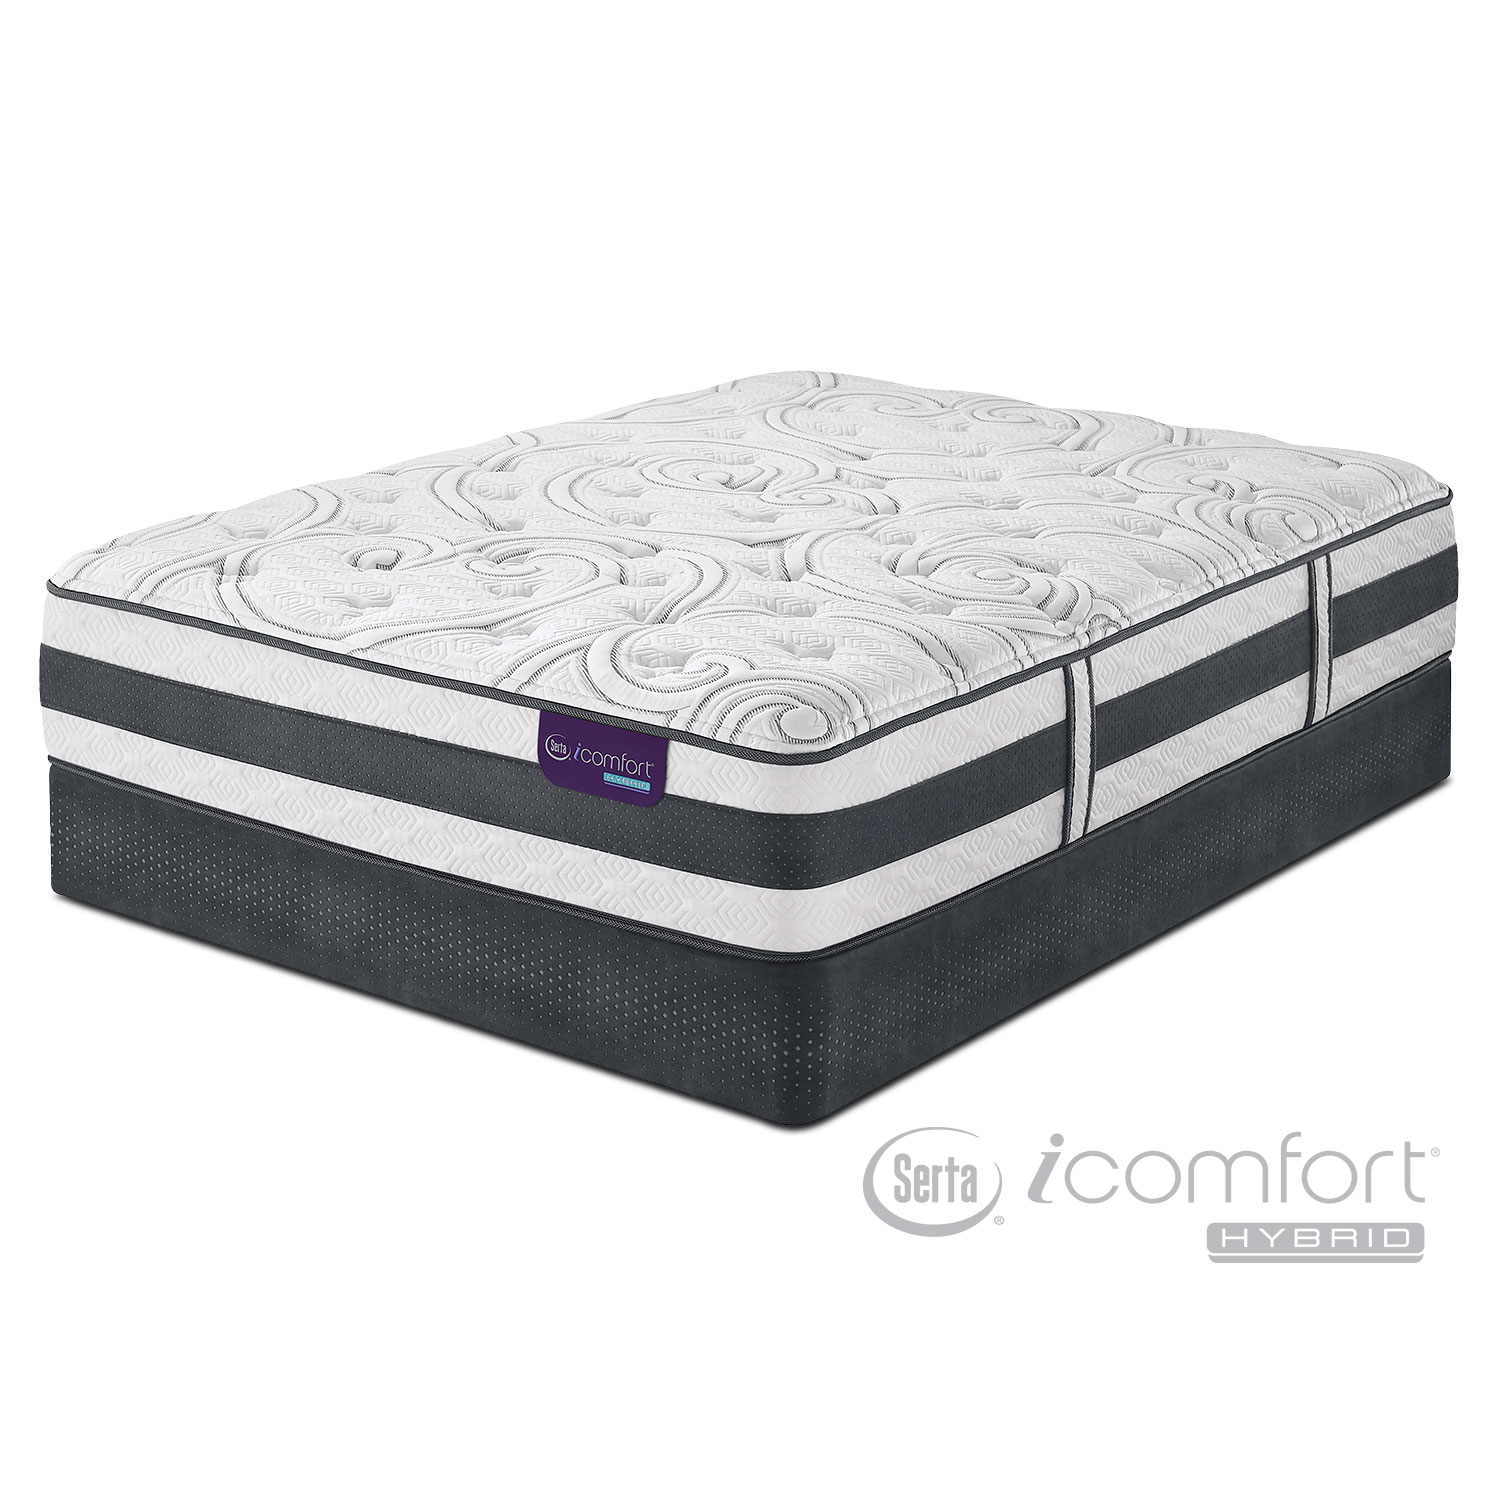 Recognition California King Mattress/Split Foundation Set